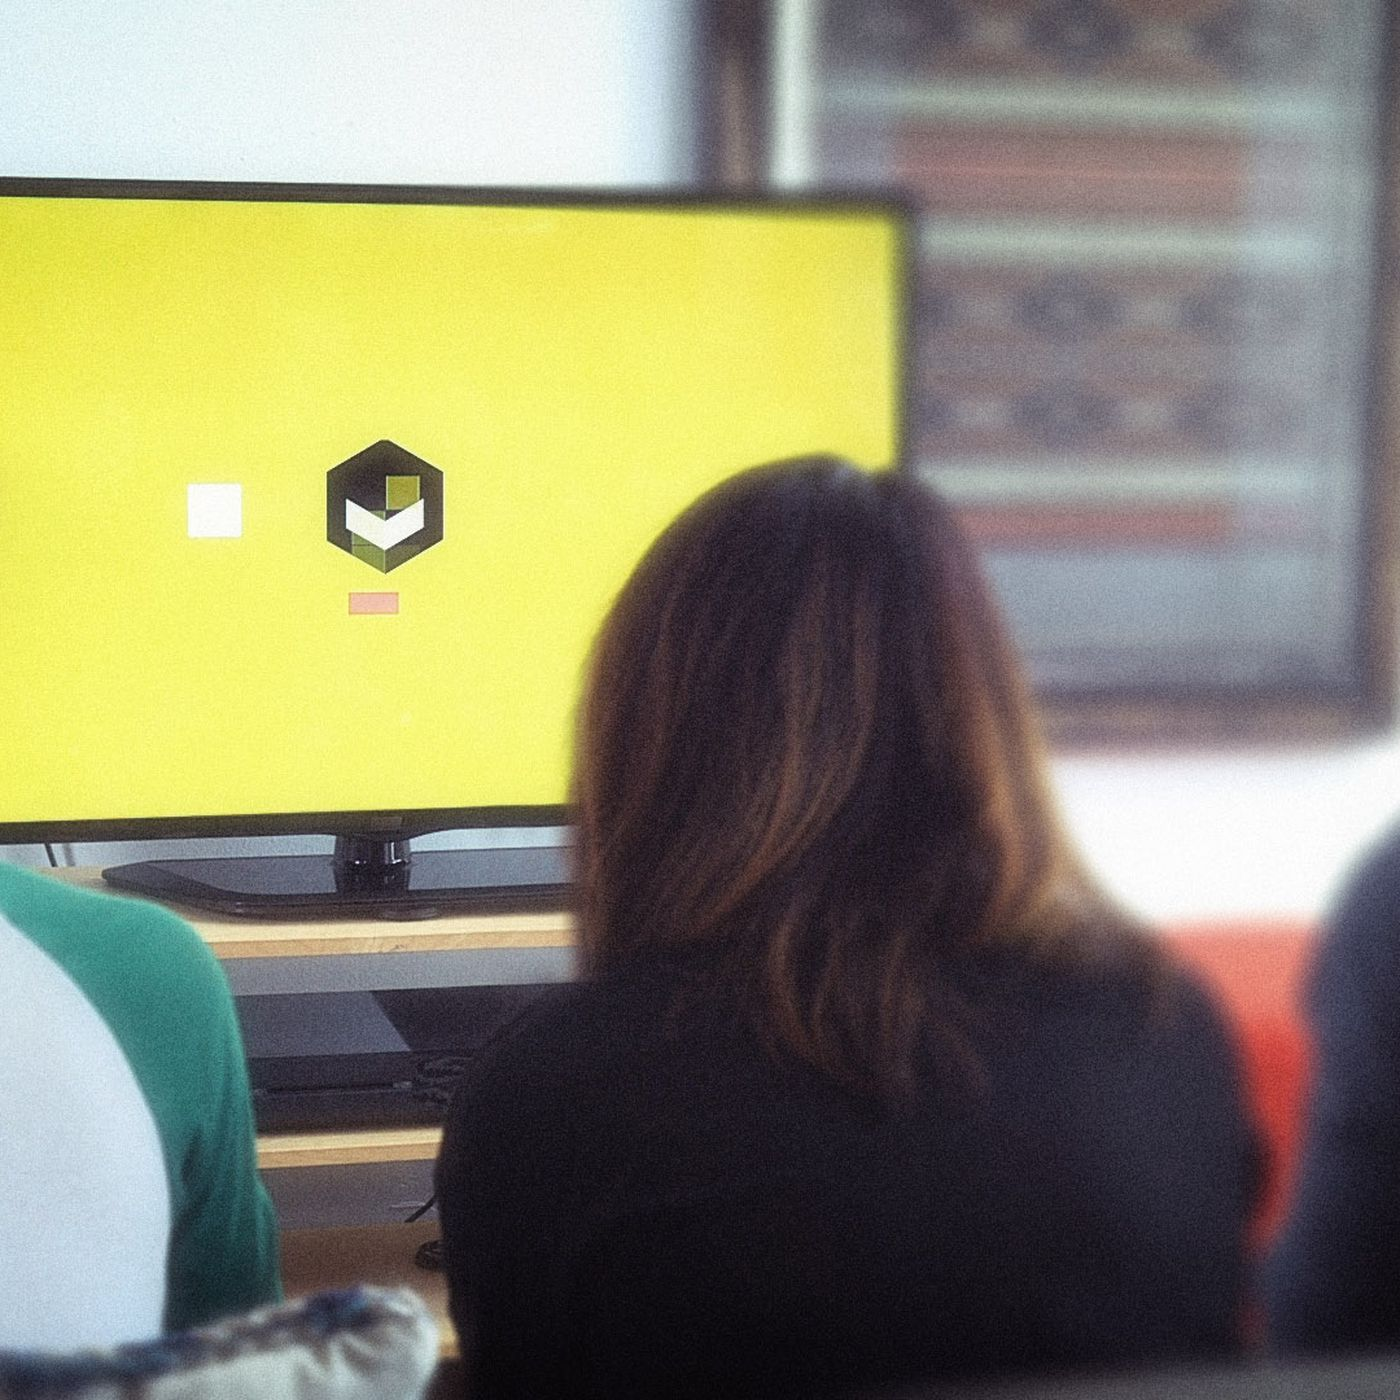 VRV, a streaming service for geeks, will launch on Xbox One